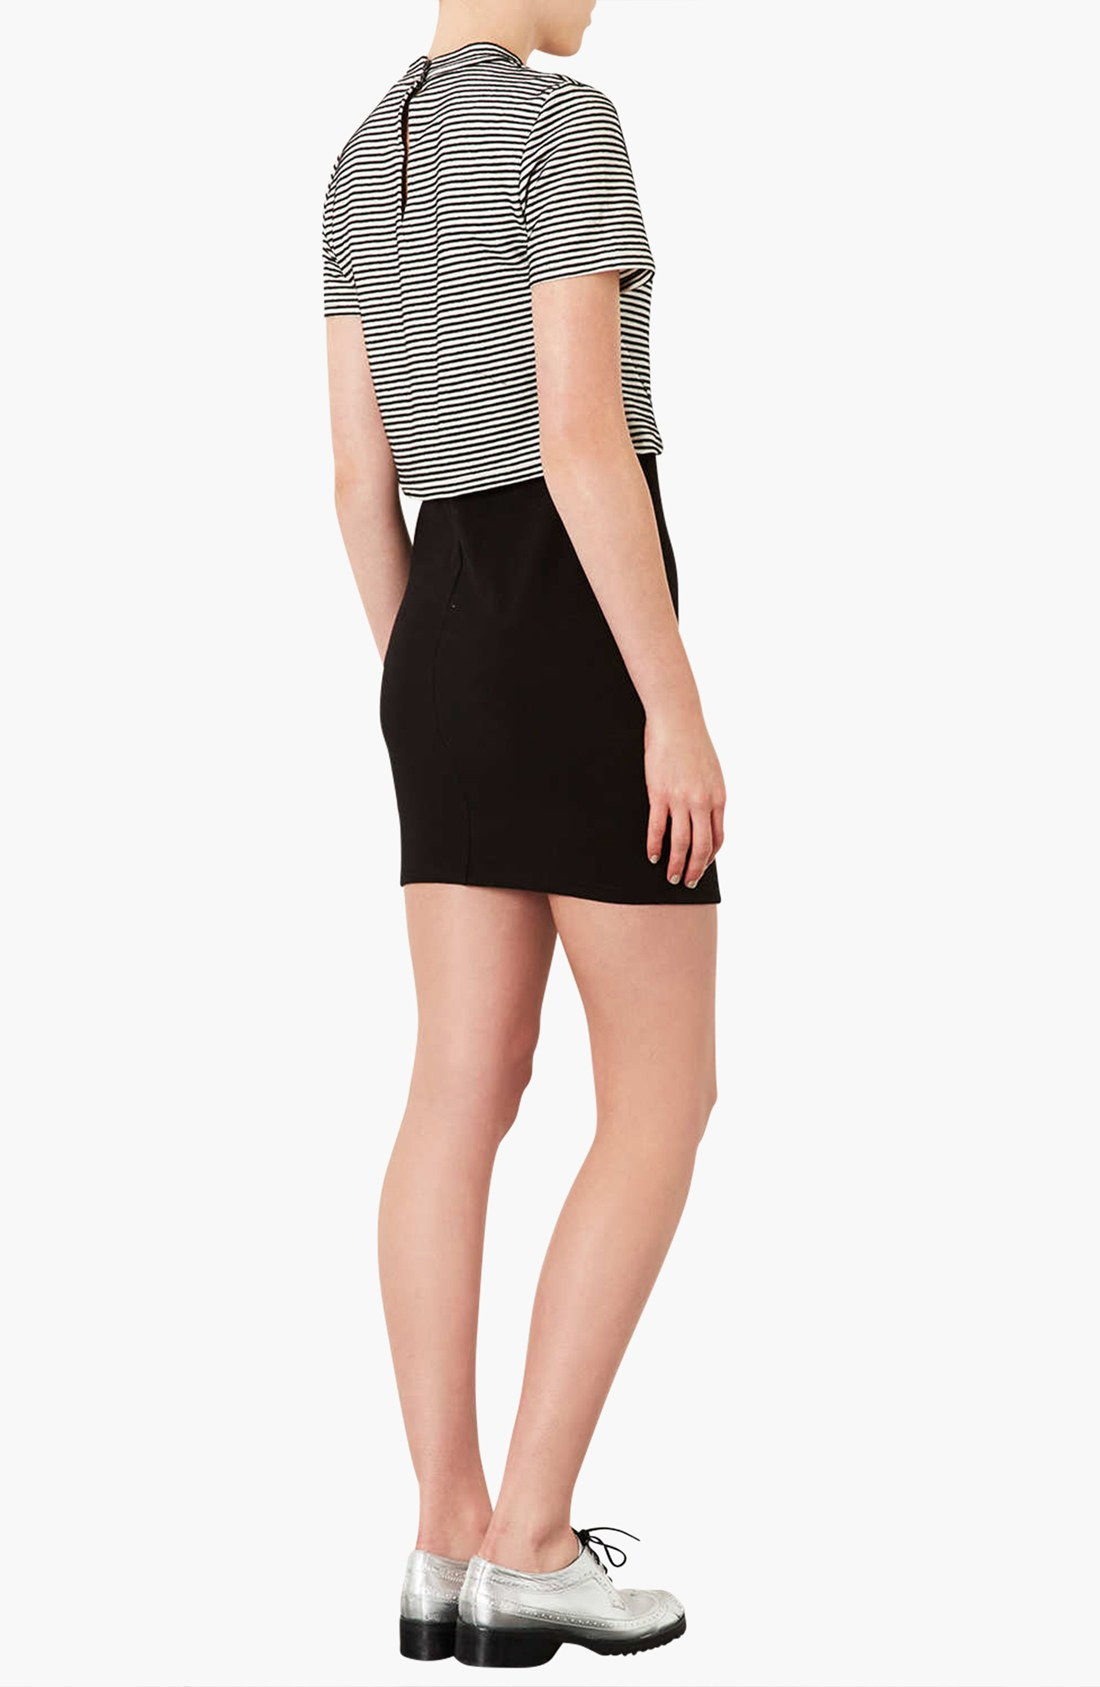 Black t shirt dress topshop - Gallery Previously Sold At Nordstrom Women S T Shirt Dresses